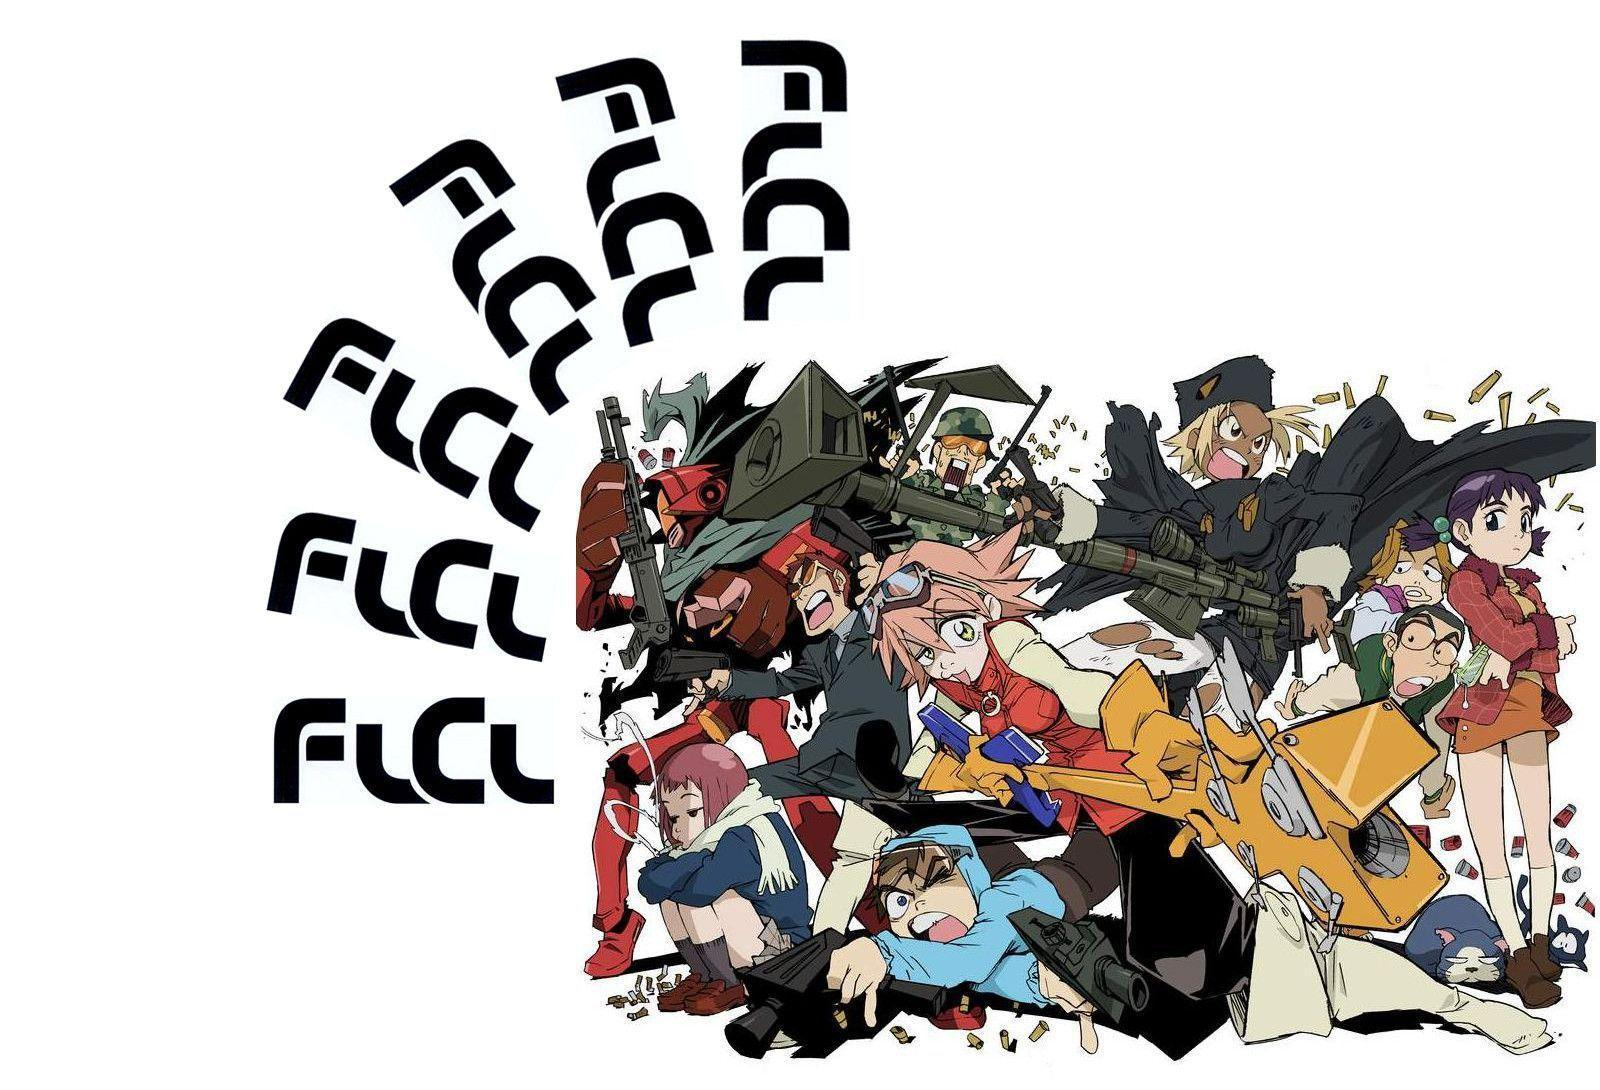 Fooly cooly wallpapers wallpaper cave - Flcl wallpaper ...